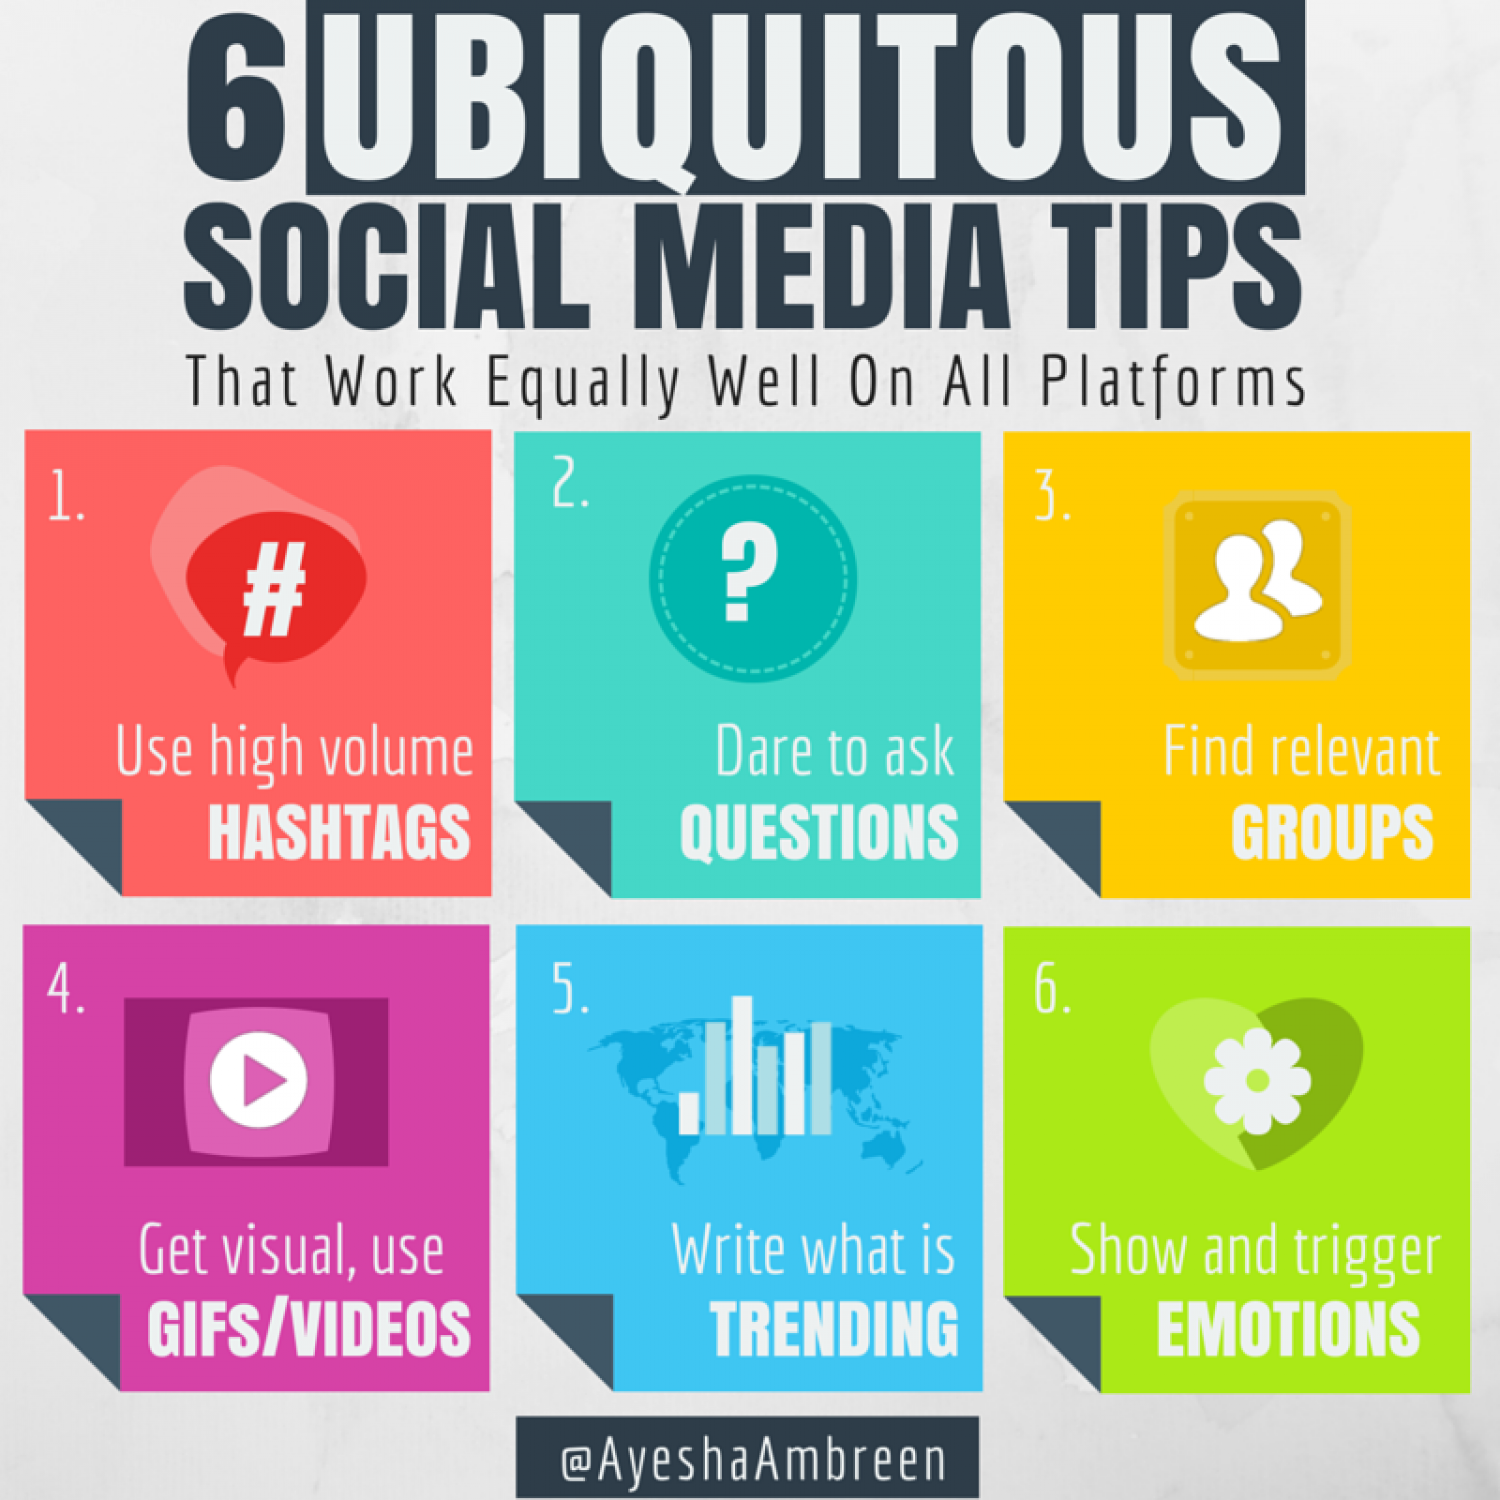 6 Ubiquitous Social Media Tips Infographic